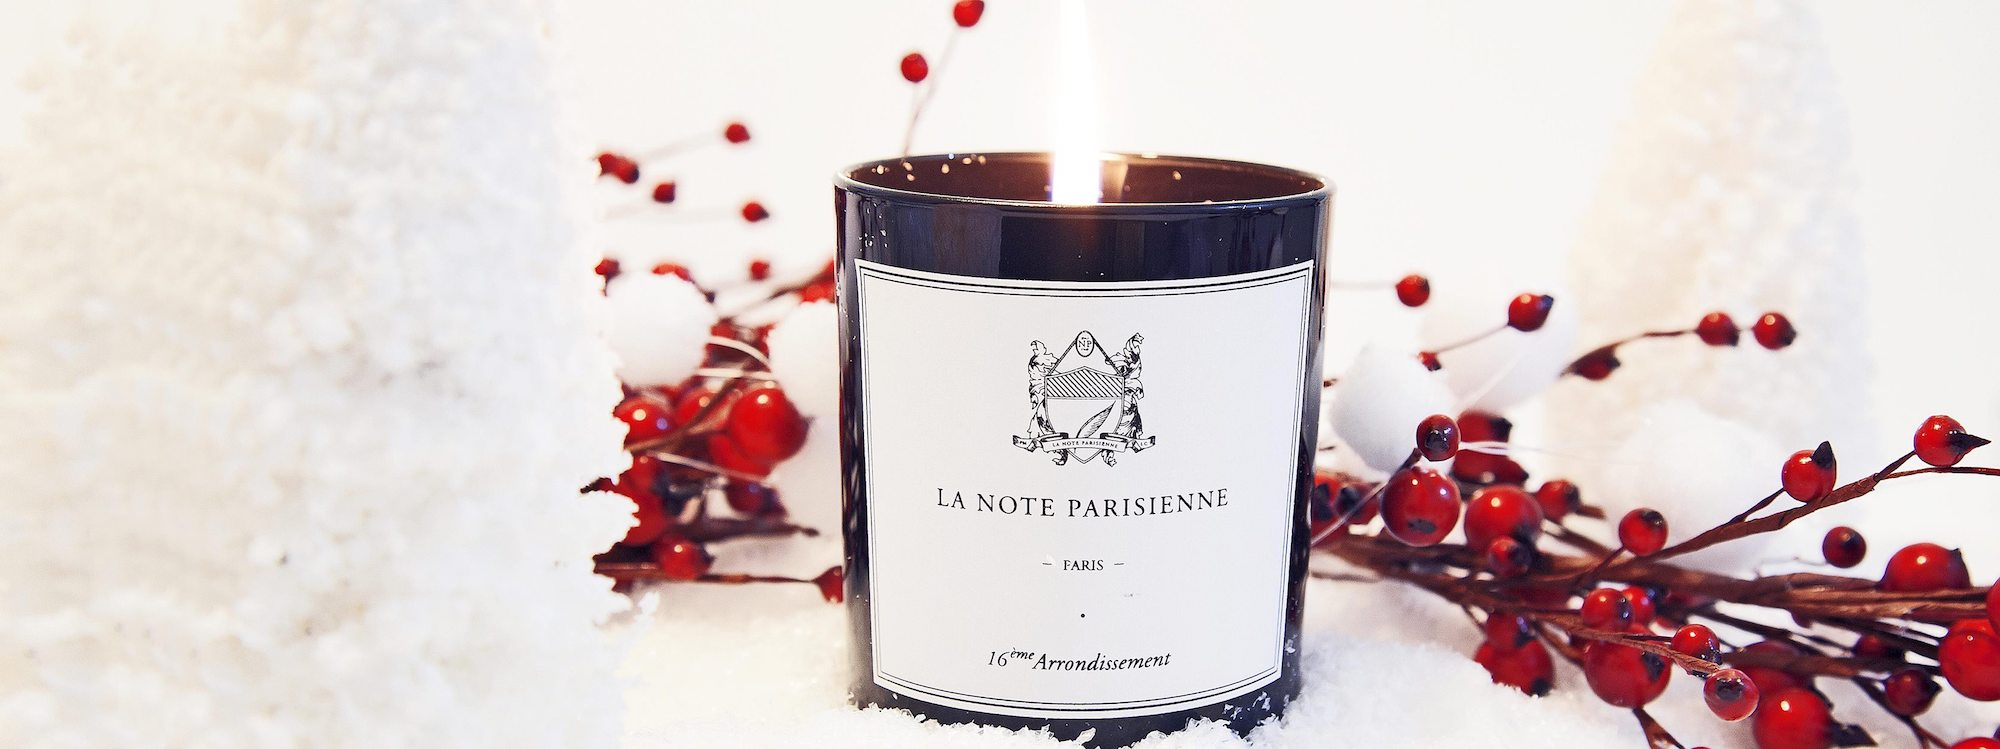 A lit candle from La Note Parisienne in a dark glass container with a black and white label. It is sat within a snowy, white Christmas setting with red berry sprays just behind it.